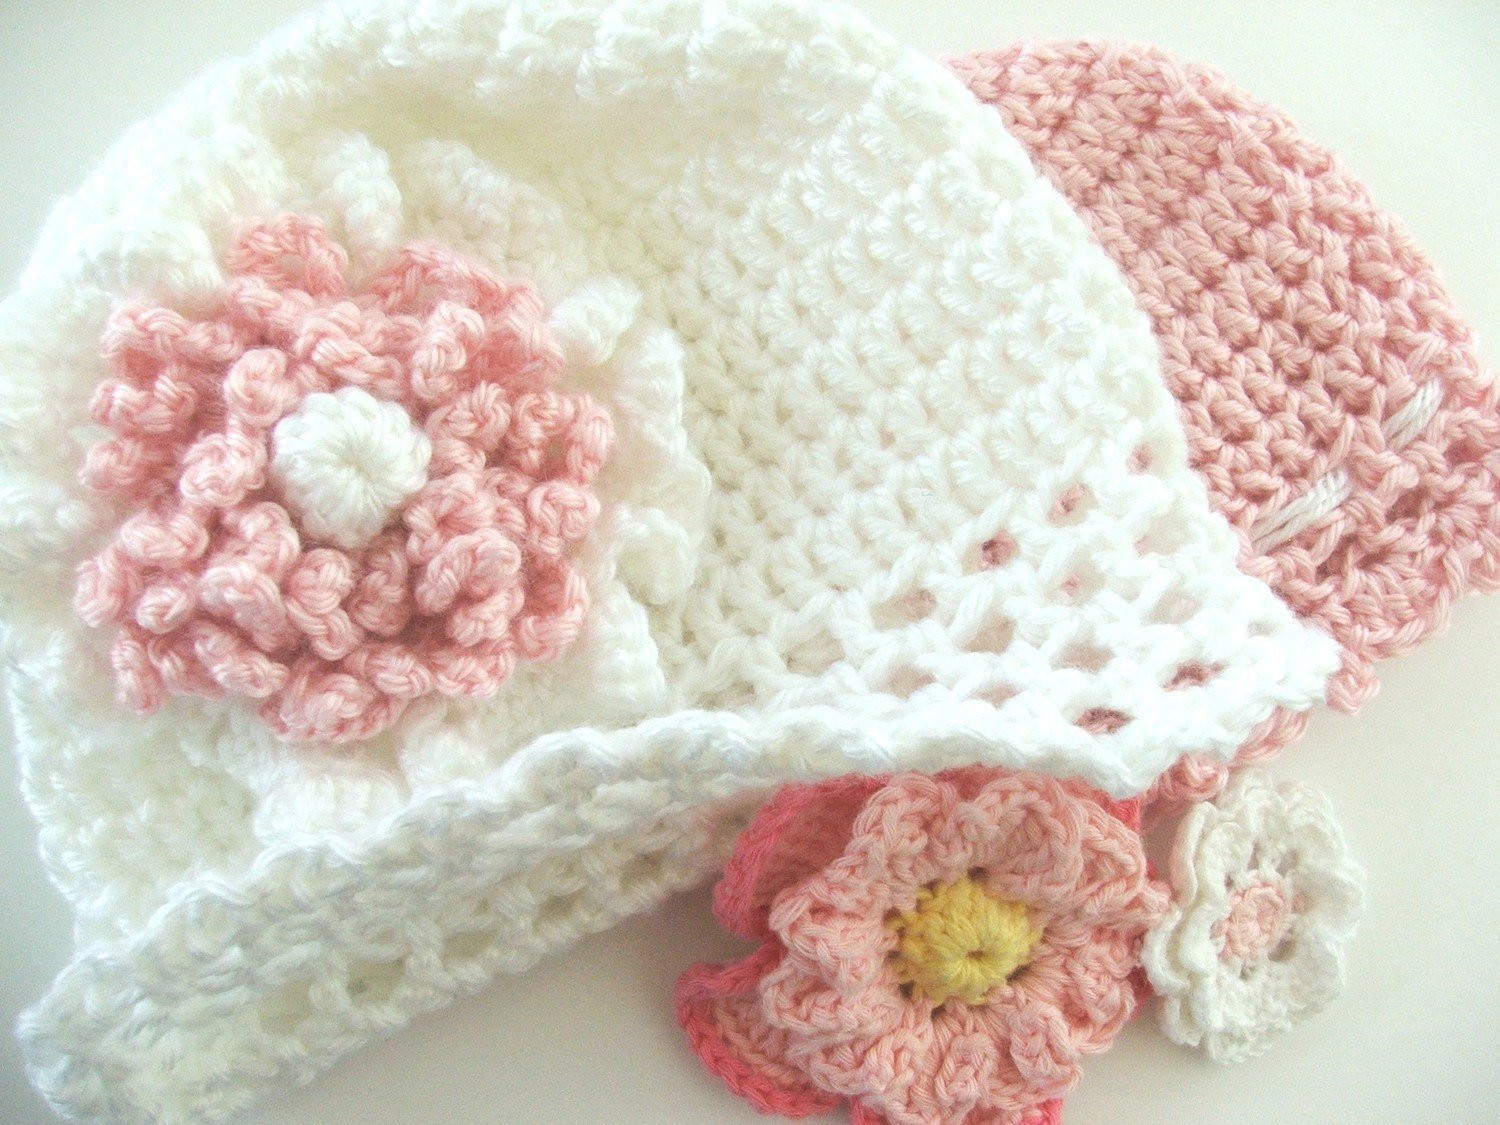 Elegant Simple Baby Hat Crochet Pattern Fast and Easy Instant Easy Crochet toddler Hat Of Superb 50 Images Easy Crochet toddler Hat